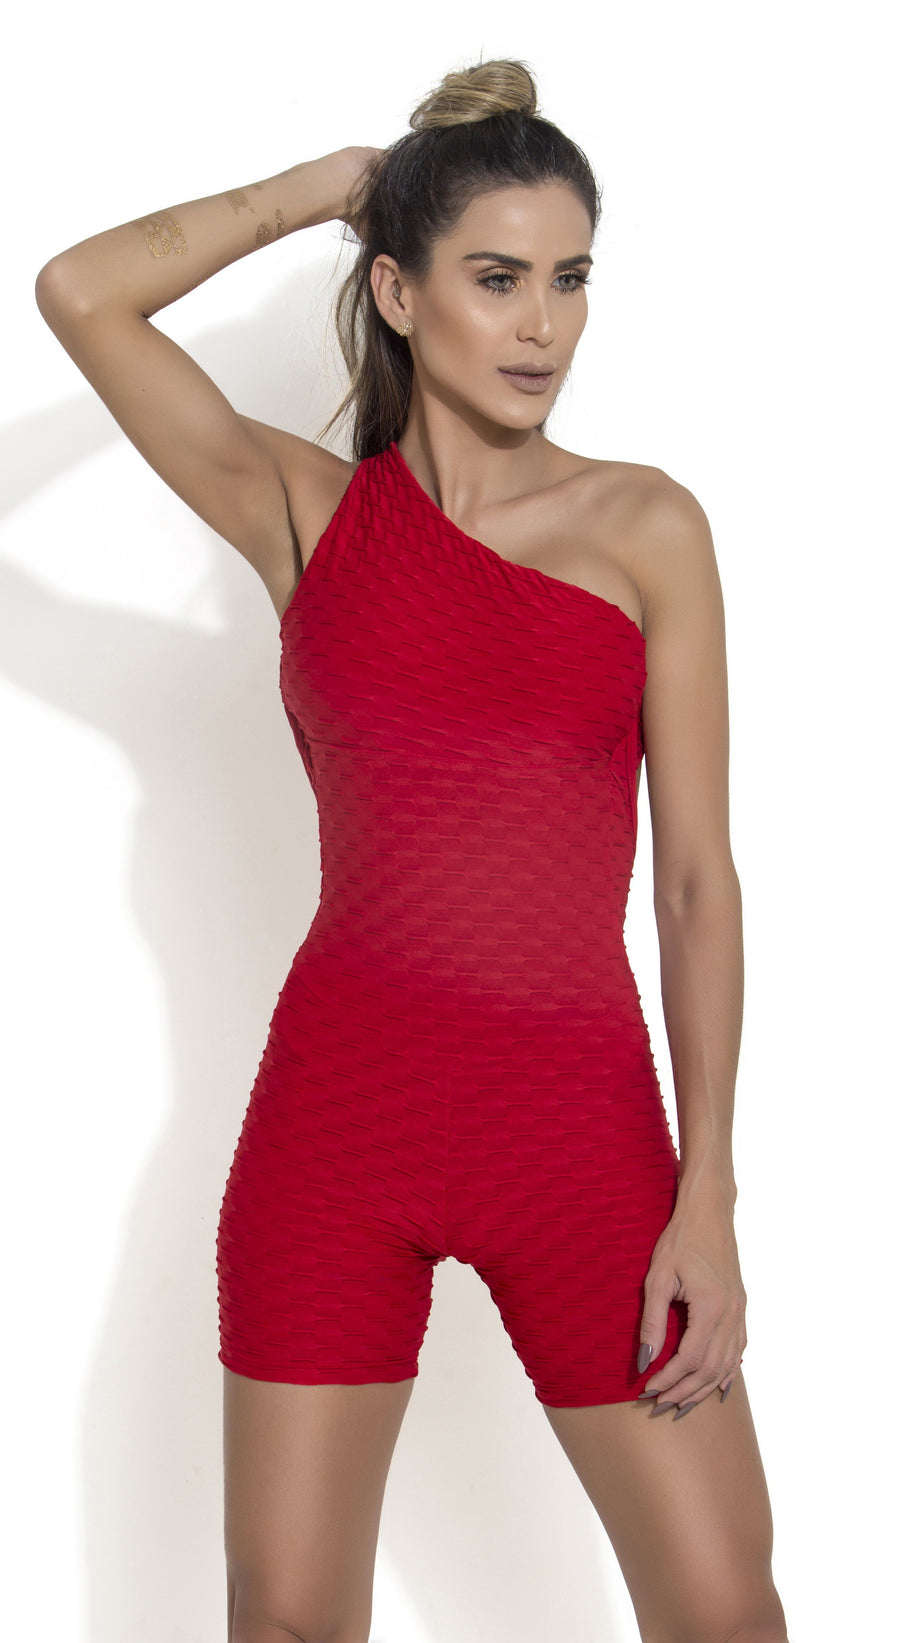 Short Fitness Jumpsuit - Honeycomb Scrunch Booty Red